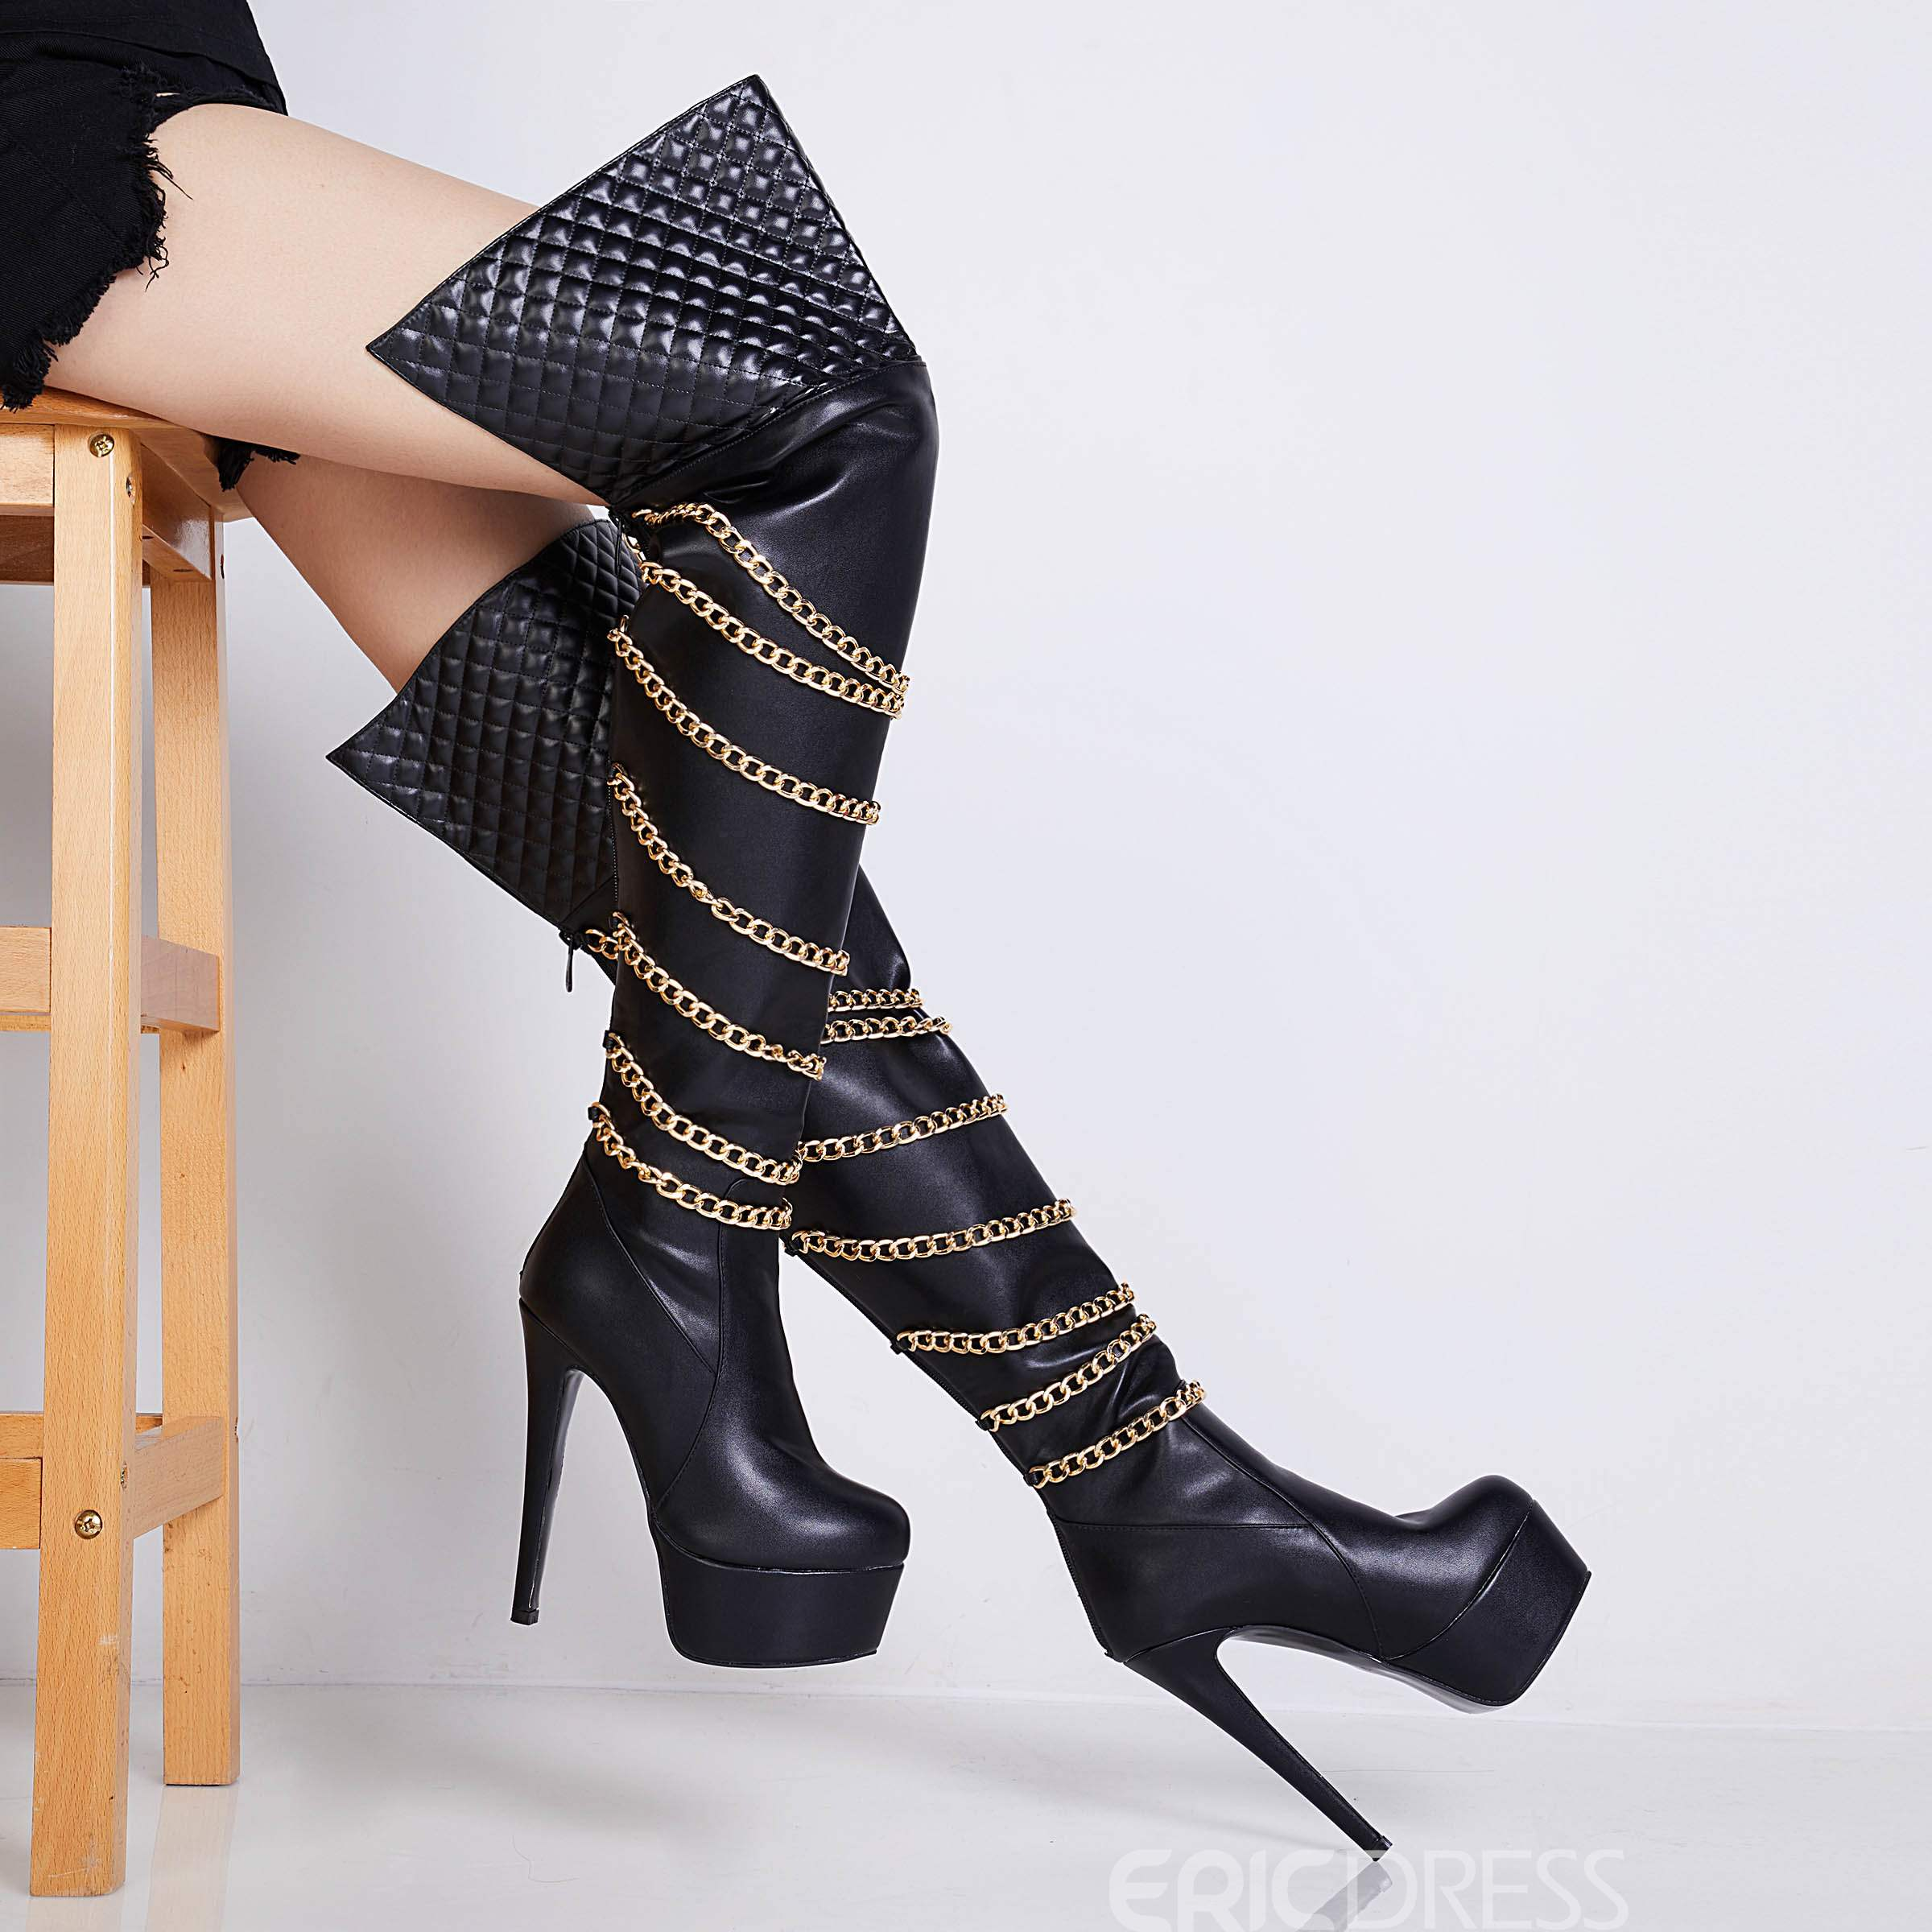 Ericdress Chain Back Zip Stiletto Heel Over The Knee Boots